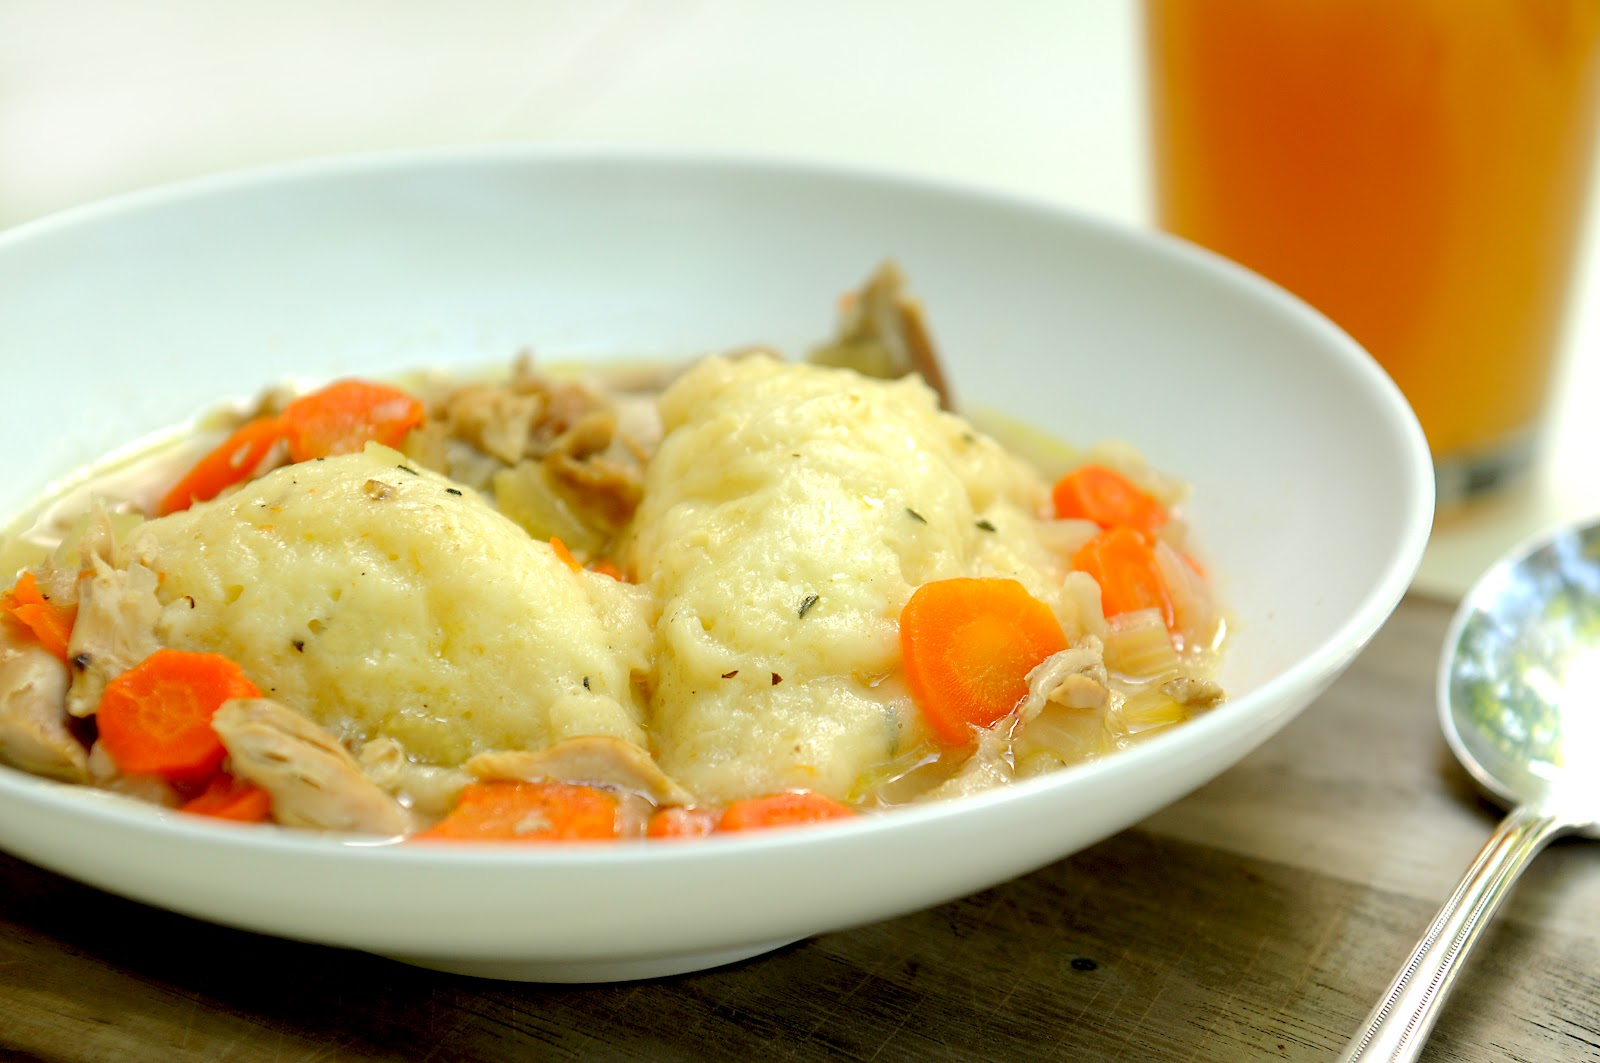 Simply Gourmet: Chicken and Dumplings